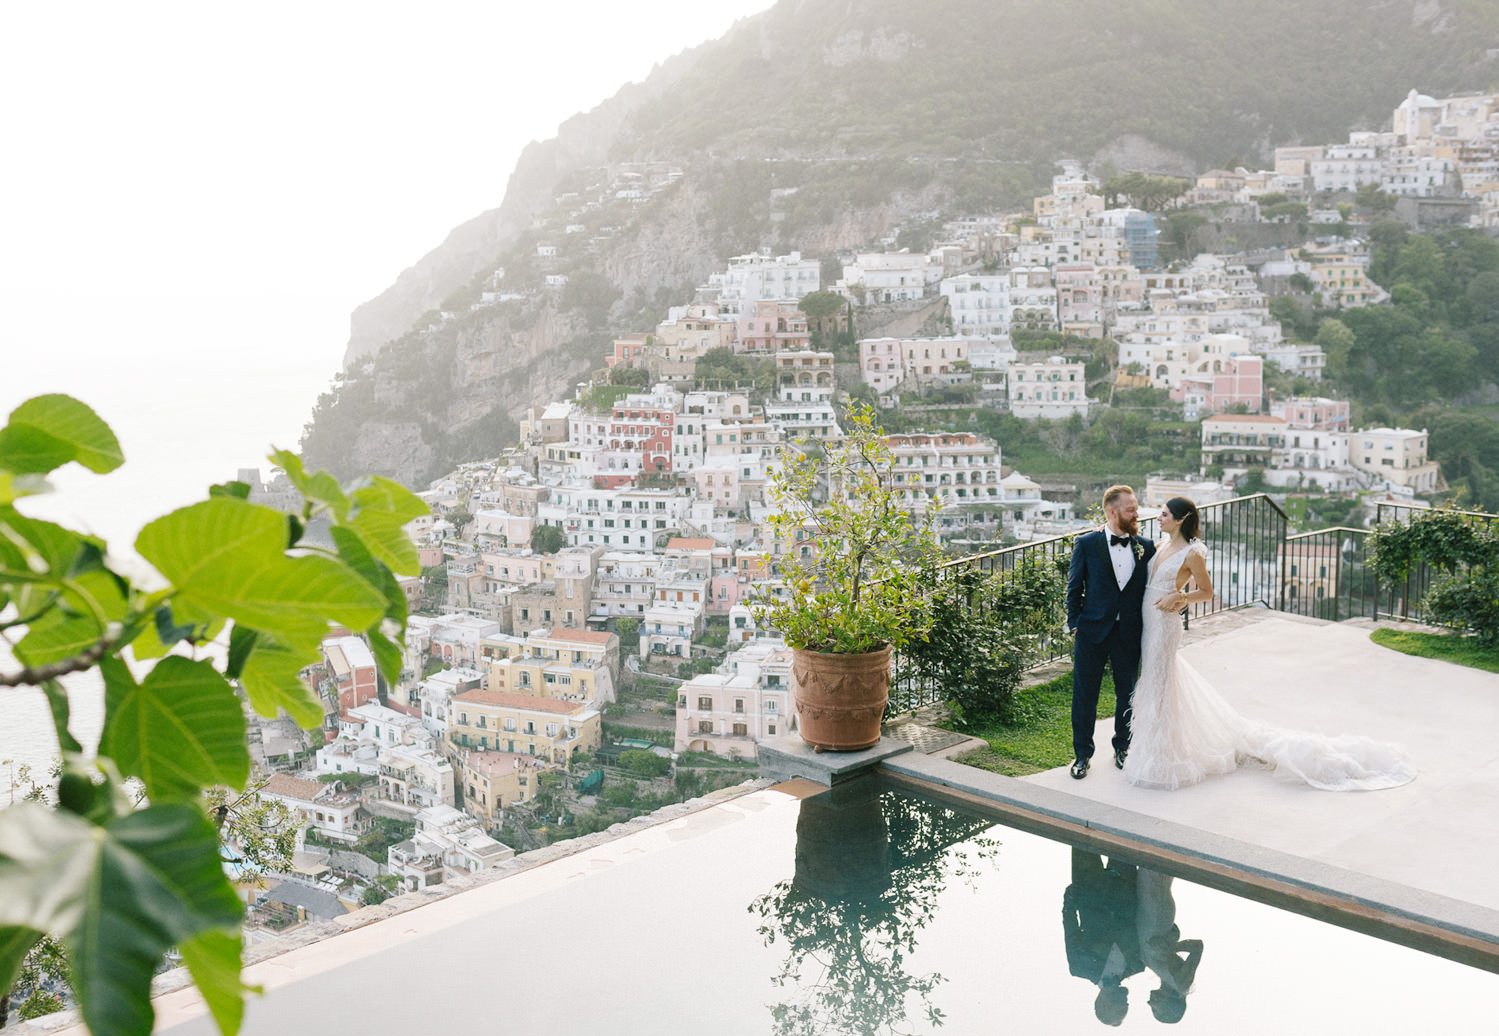 Timeless luxury wedding at Villa San Giacomo: the bride and groom share an intimate moment together on the terrace, overlooking Positano| Photo: Camilla Anchisi Photography | Planning: Weddings Italy